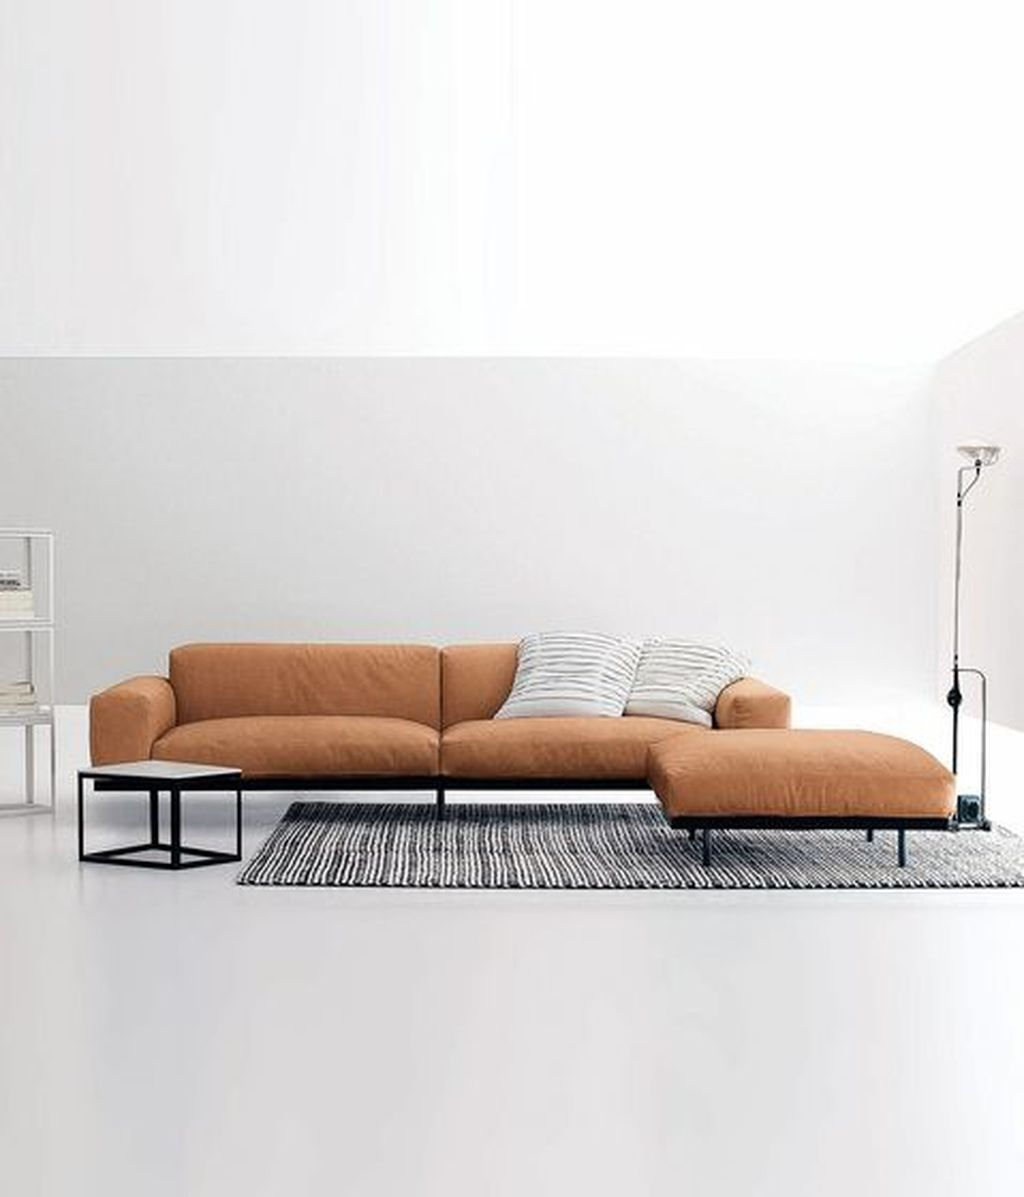 50 Cozy Ultra Modern Sofa Designs Ideas – HOMEWOWDECOR